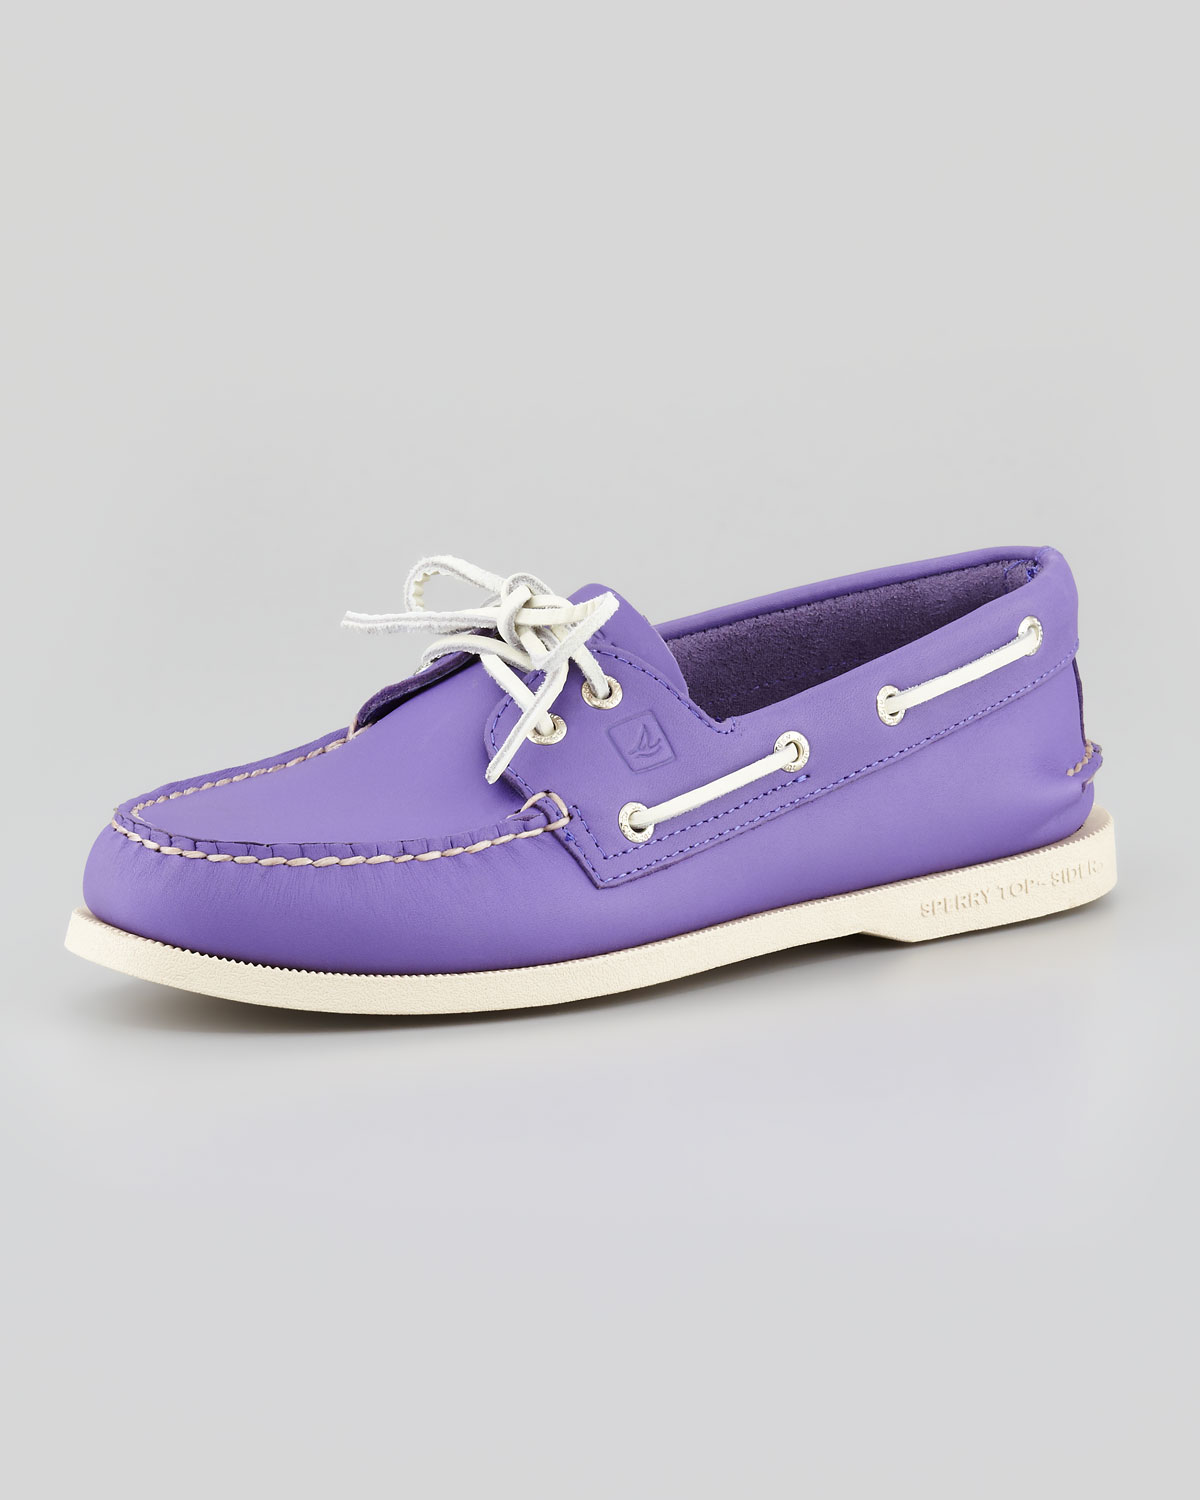 Sperry Top Sider Authentic Original Boat Shoe Men